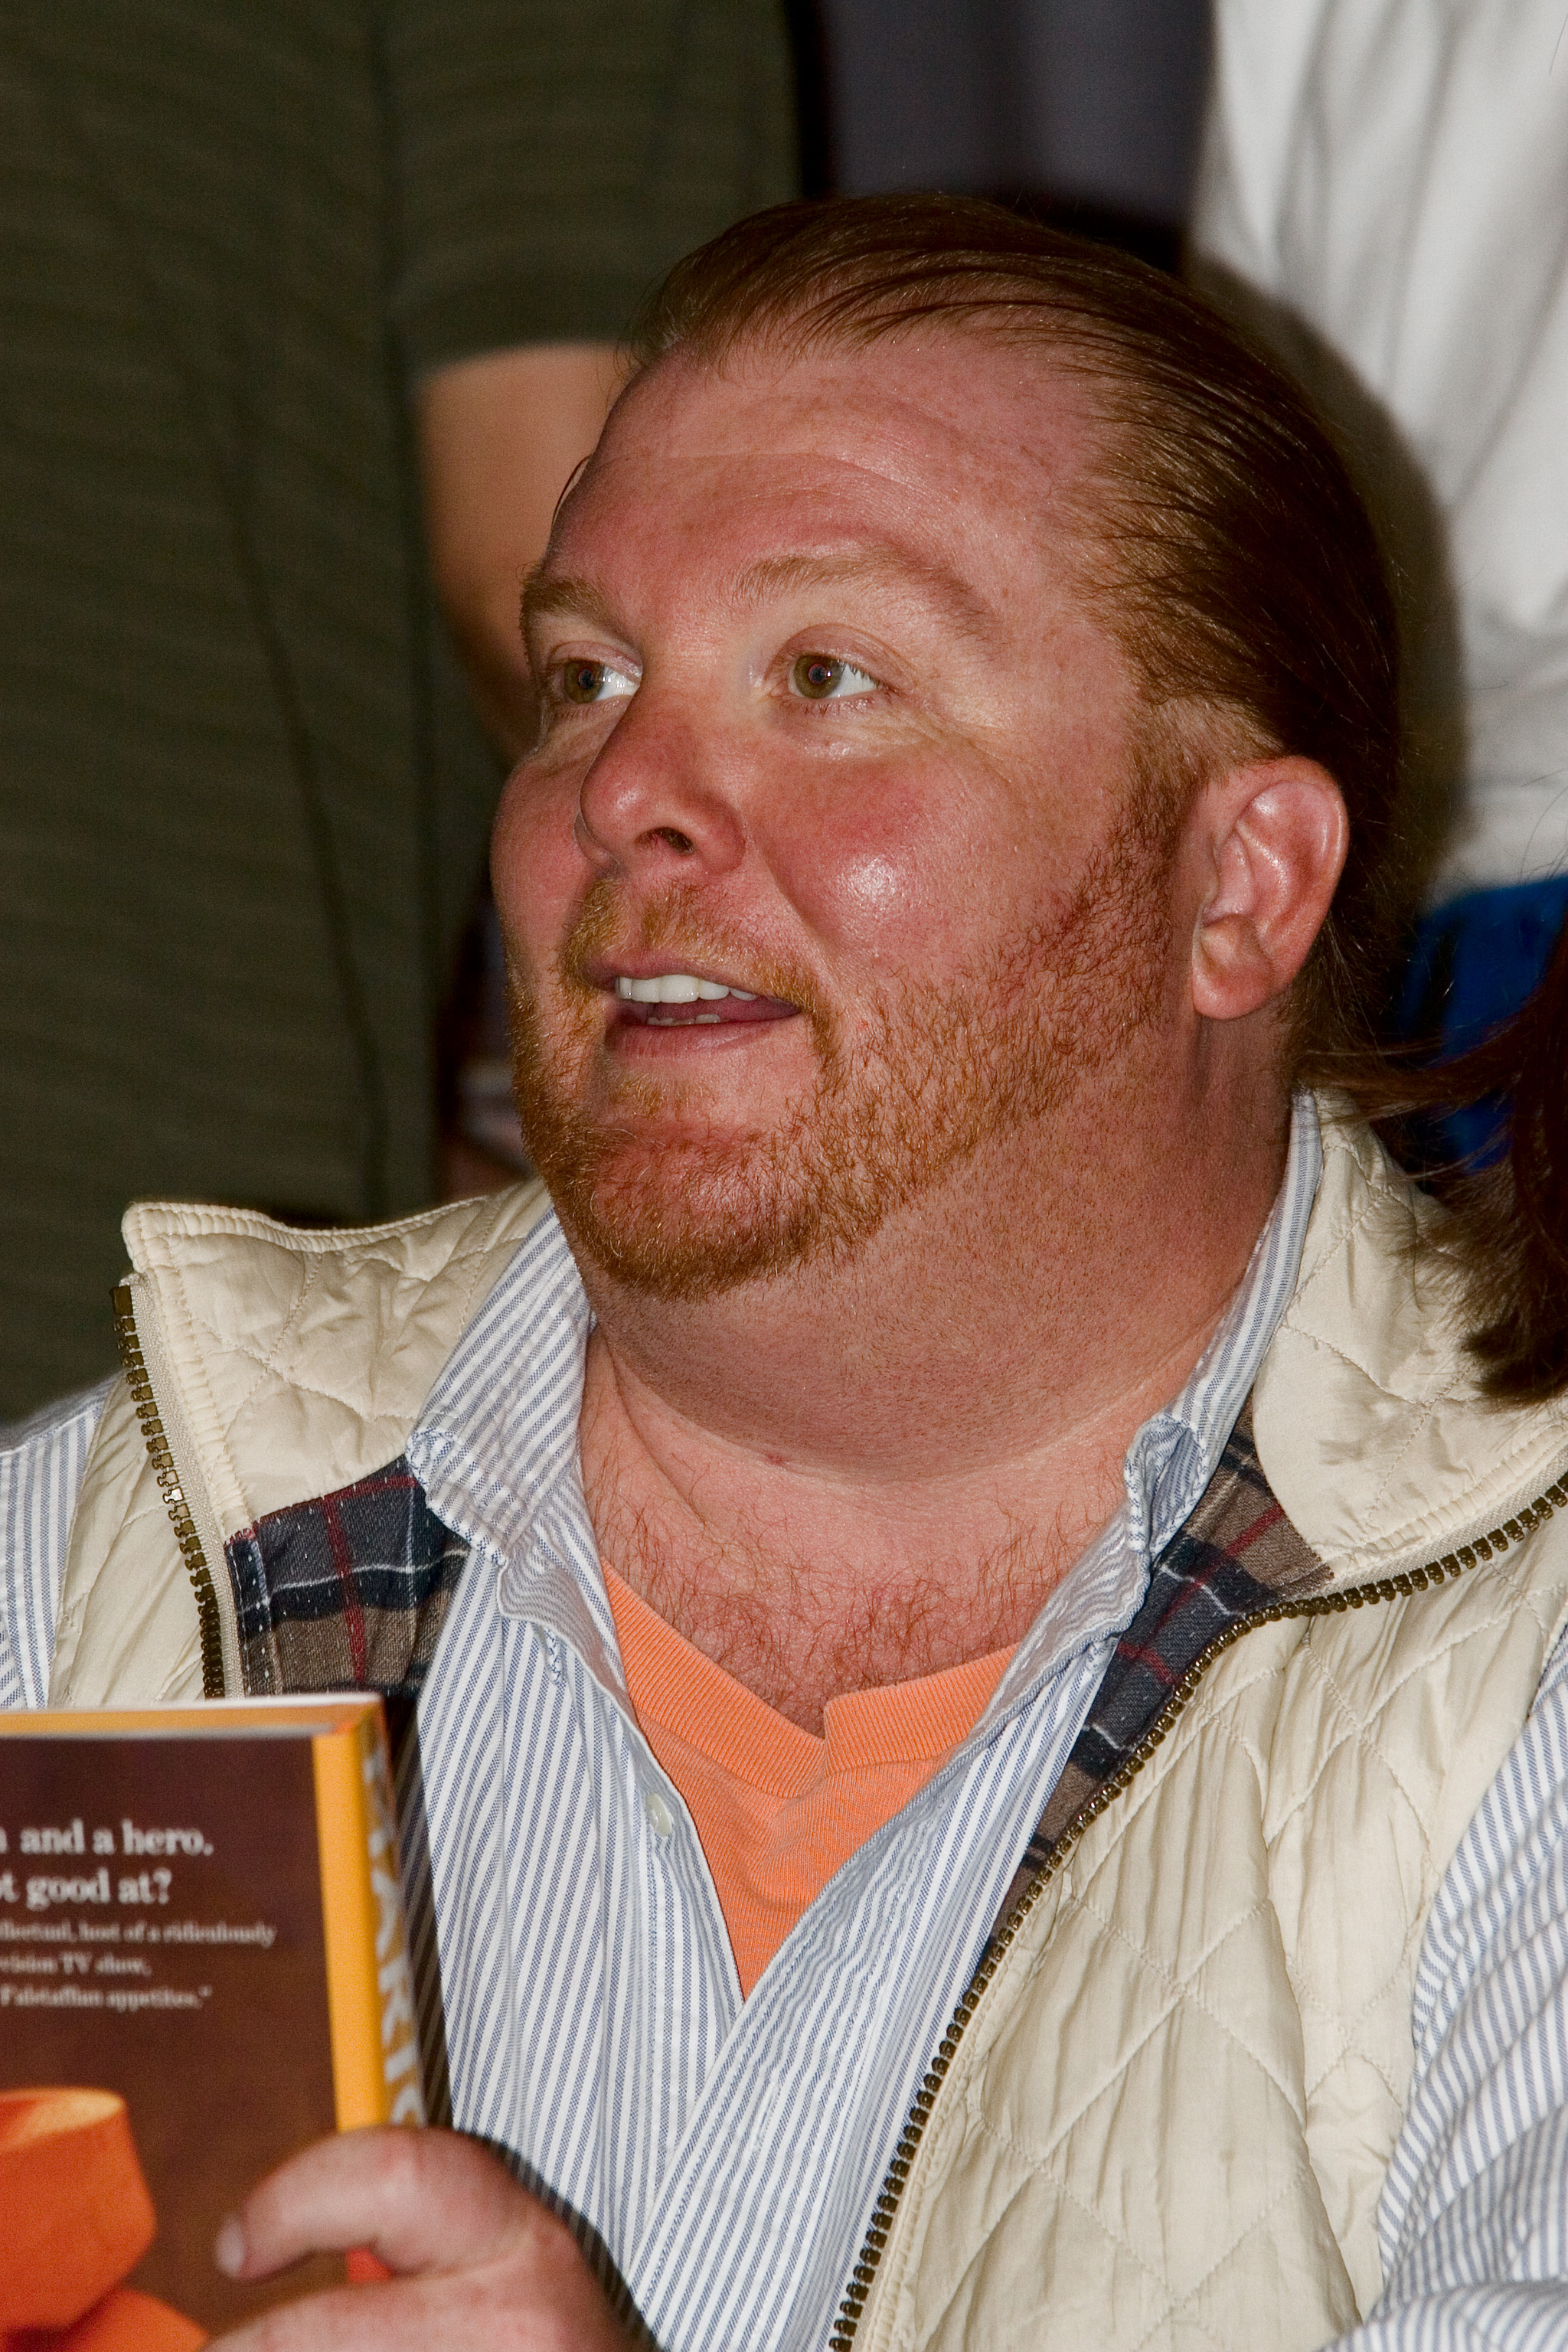 The 58-year old son of father Armandino Batali and mother Marilyn LaFramboise Mario Batali in 2018 photo. Mario Batali earned a  million dollar salary - leaving the net worth at 25 million in 2018